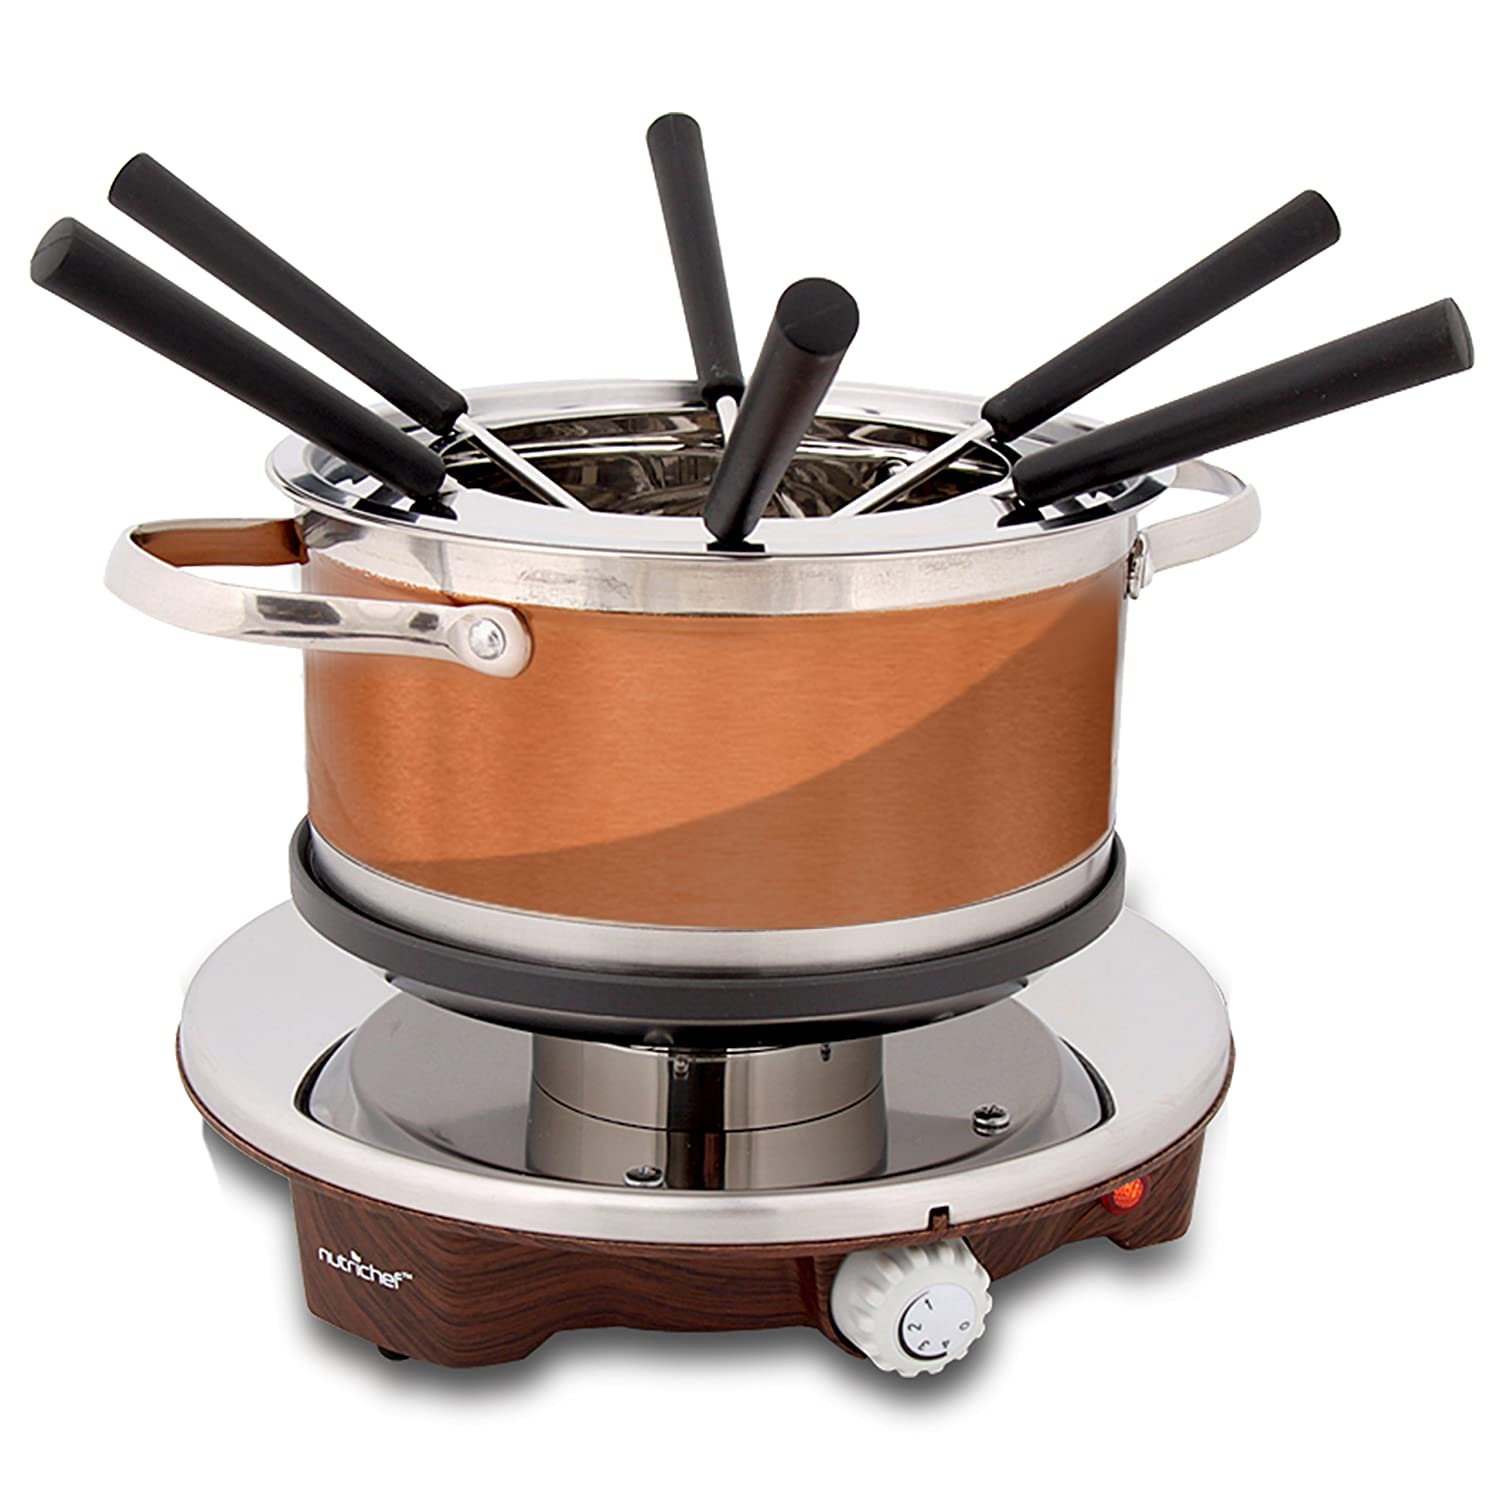 Electric Chocolate Fondue Maker Set - 1000W Warmer Machine Kit 1 Quart Nonstick Stainless Steel Melting Pot w/LED Light, 6 Dipping Forks, Melts Cheese Chocolate Candy Sauce Dip - NutriChef PKFNMK25 Sound Around